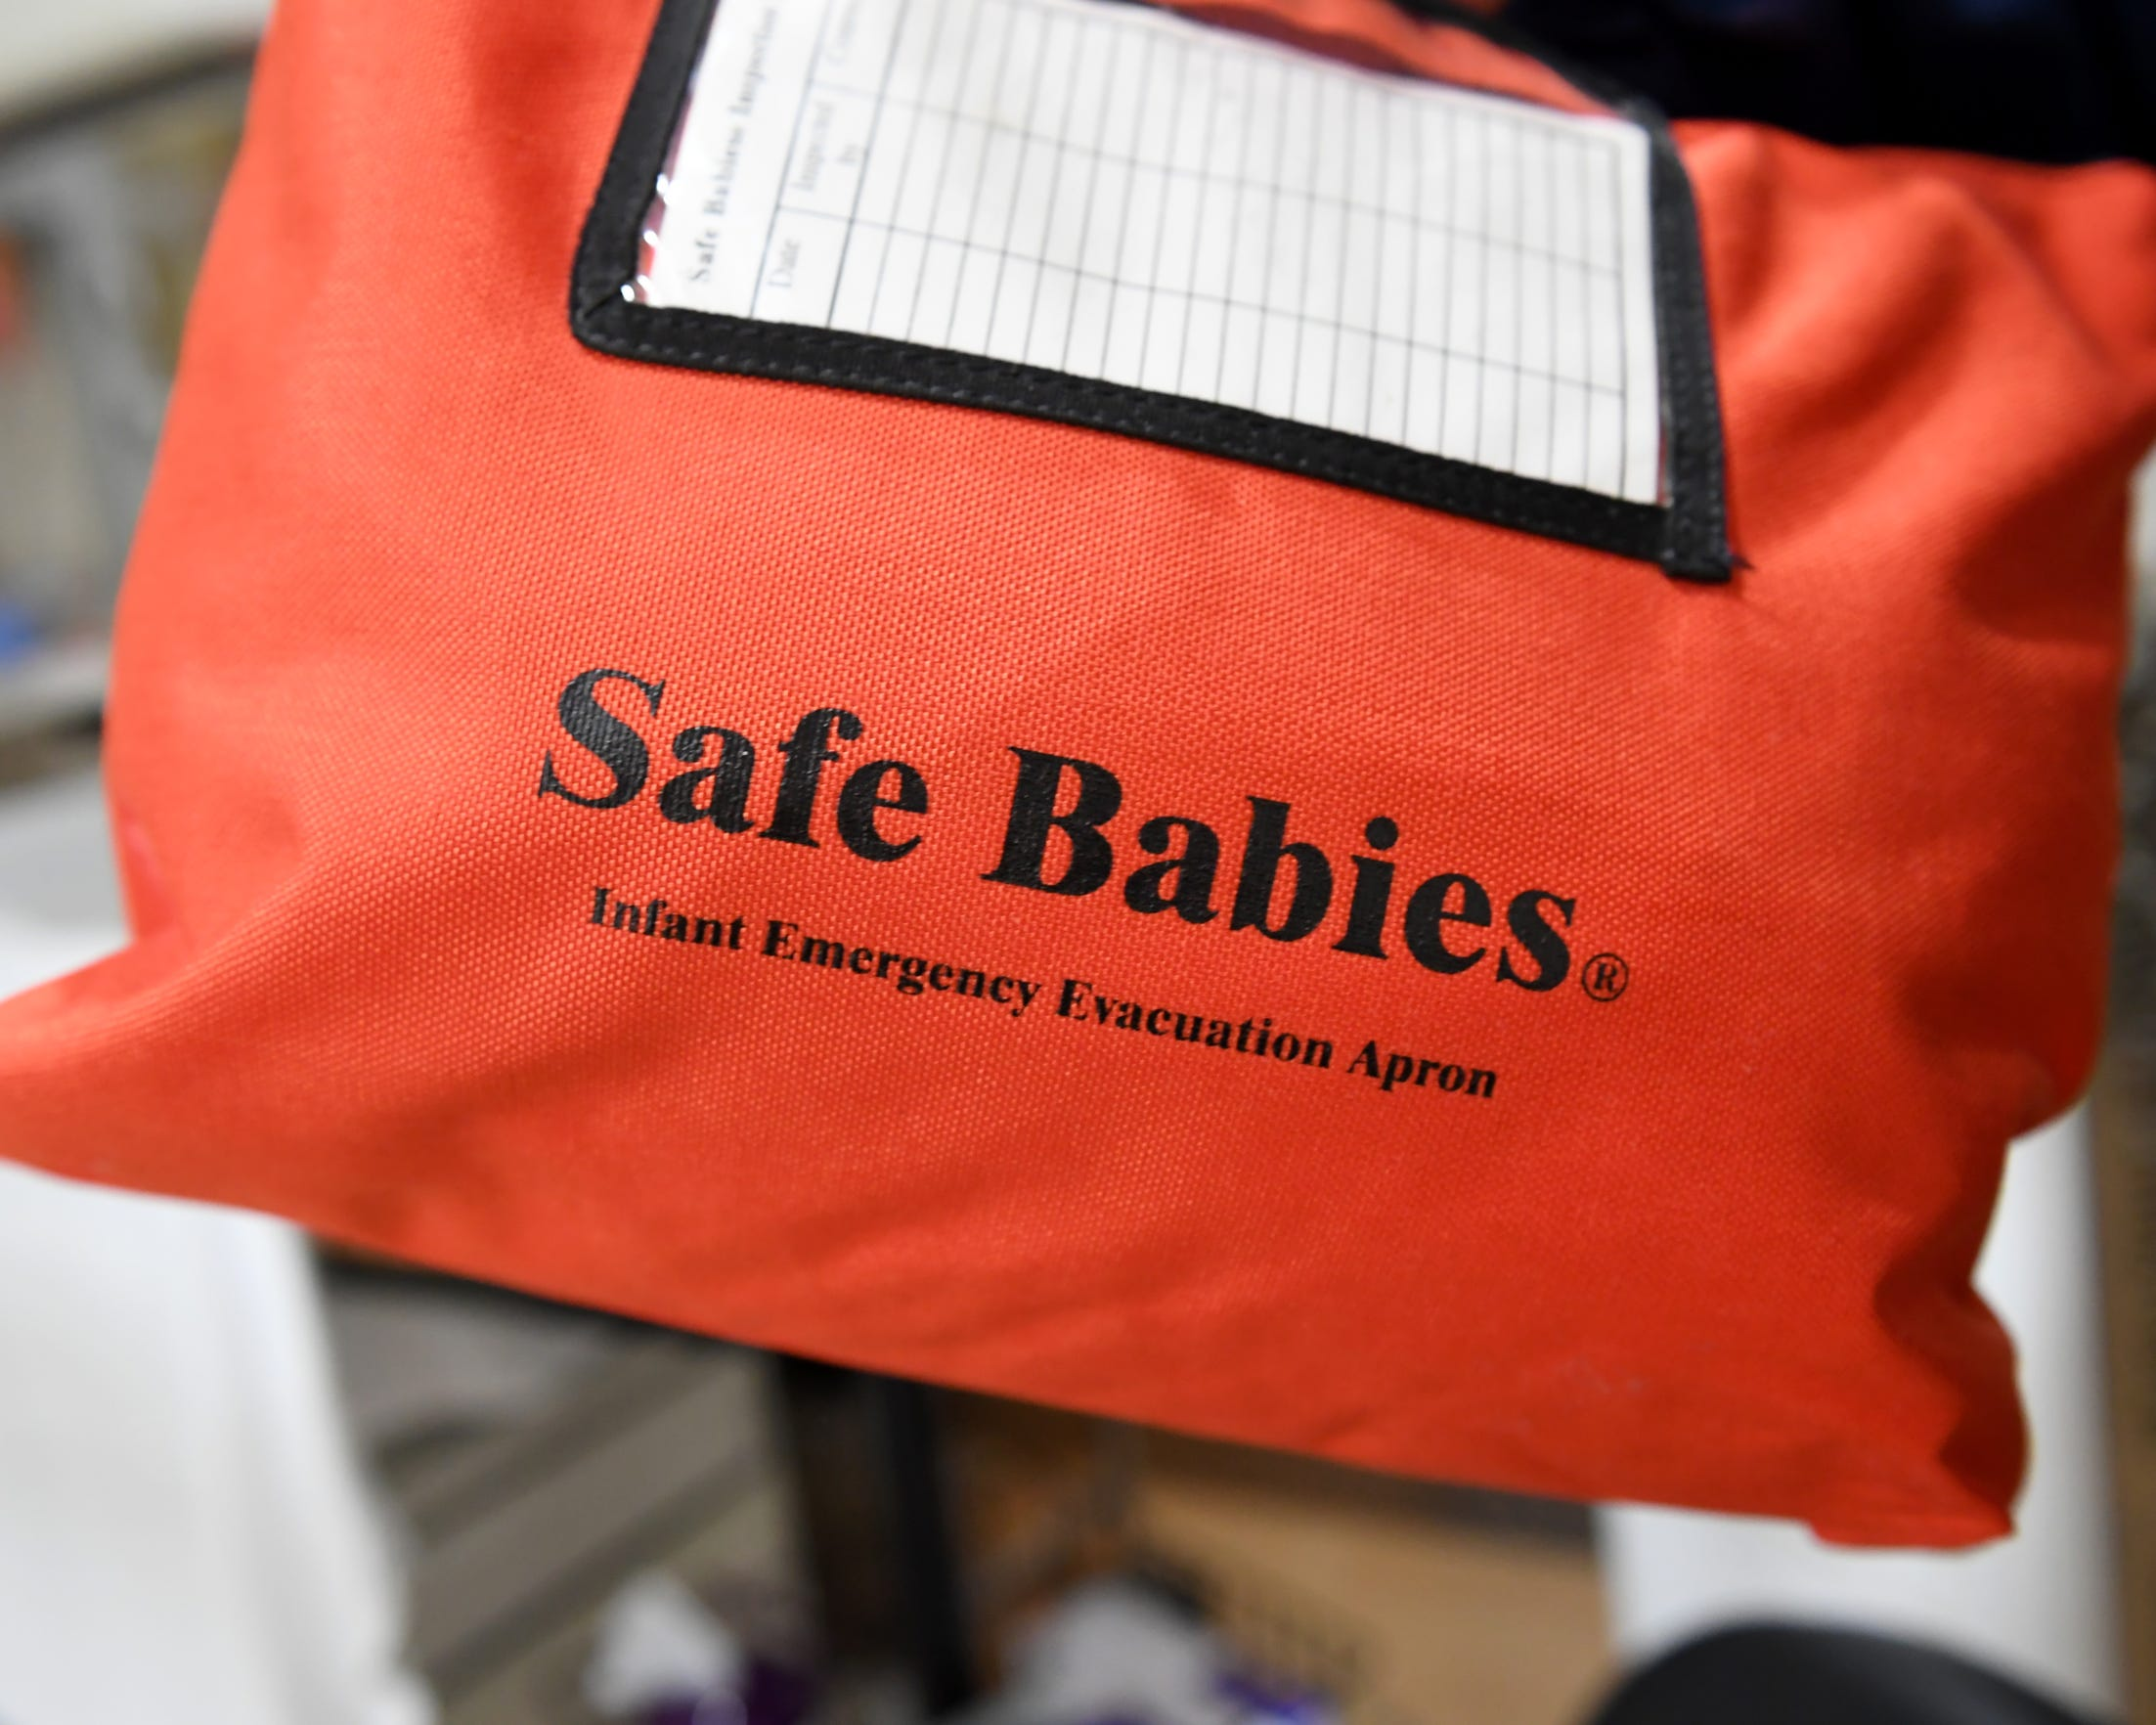 Mercy Medical Center Redding staff keeps a Safe Babies Infant Emergency Evacuation Apron on hand in the event of a rapid emergency evacuation of the neonatal intensive unit.